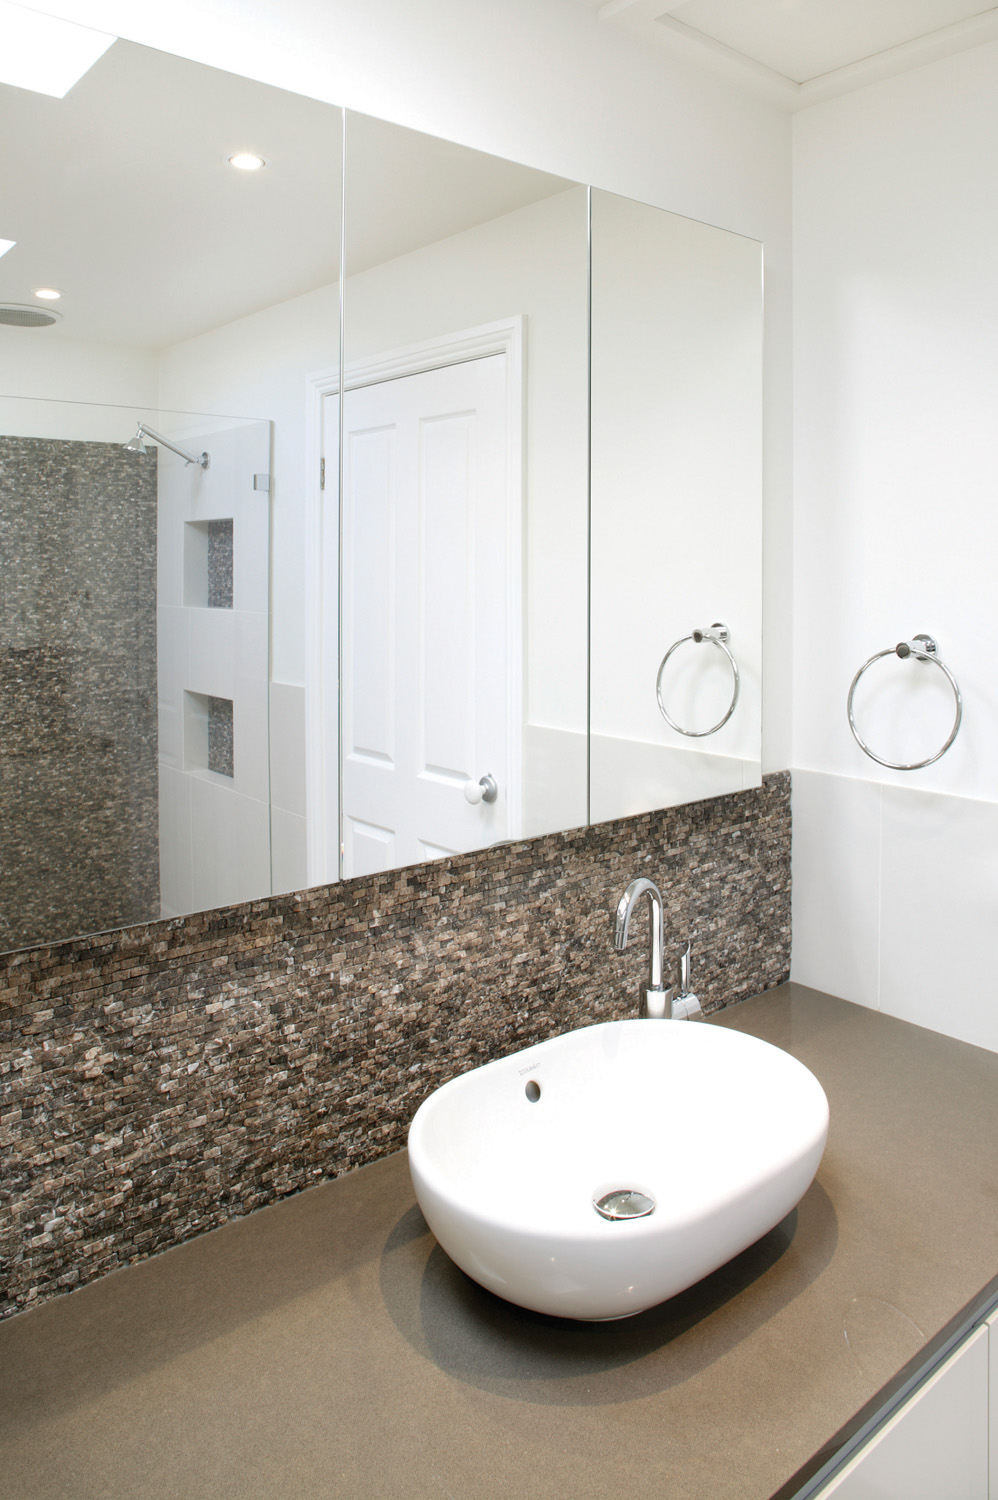 New york bathroom design chic and simple completehome for New york bathroom design